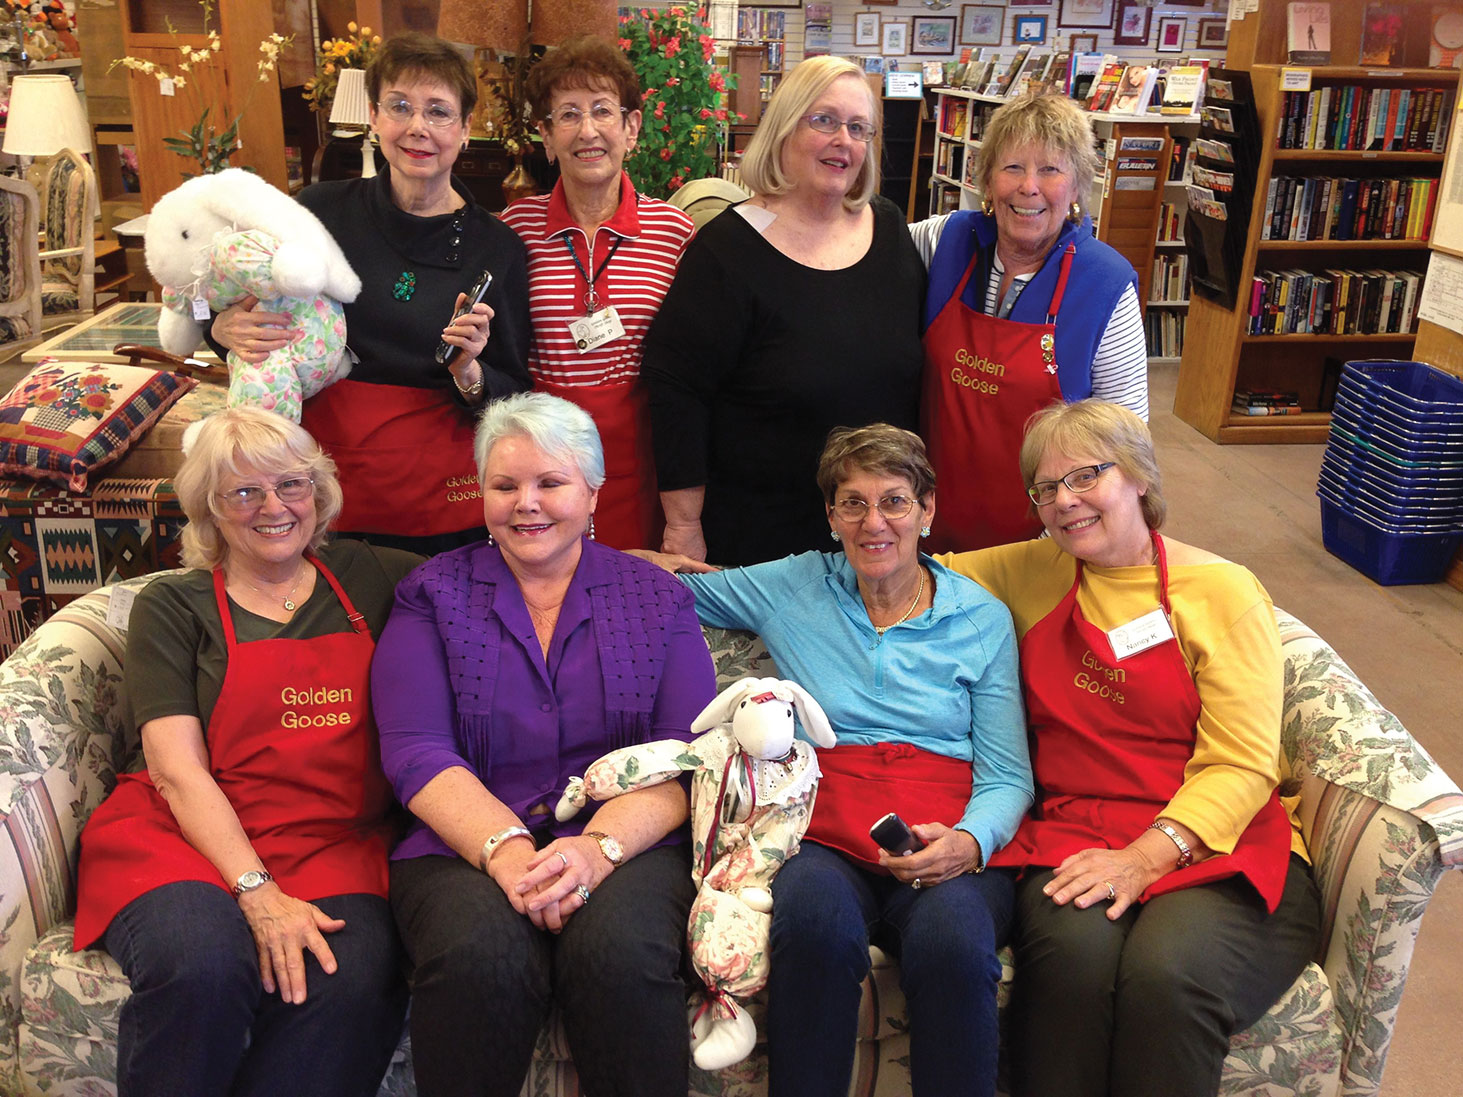 Left to right, standing: Joan Cohen, Diane Pettit, Ginny Berkey and Eithne Cook; seated: Annie Maud, Connie Campbell, Bev Harpold and Nancy Krauss. Not pictured: Charlotte James, Libby Cohen, Judy Jenkins, Laura Ingold, Beth Mullens, Marie Tayburn and Gayl VanNatter